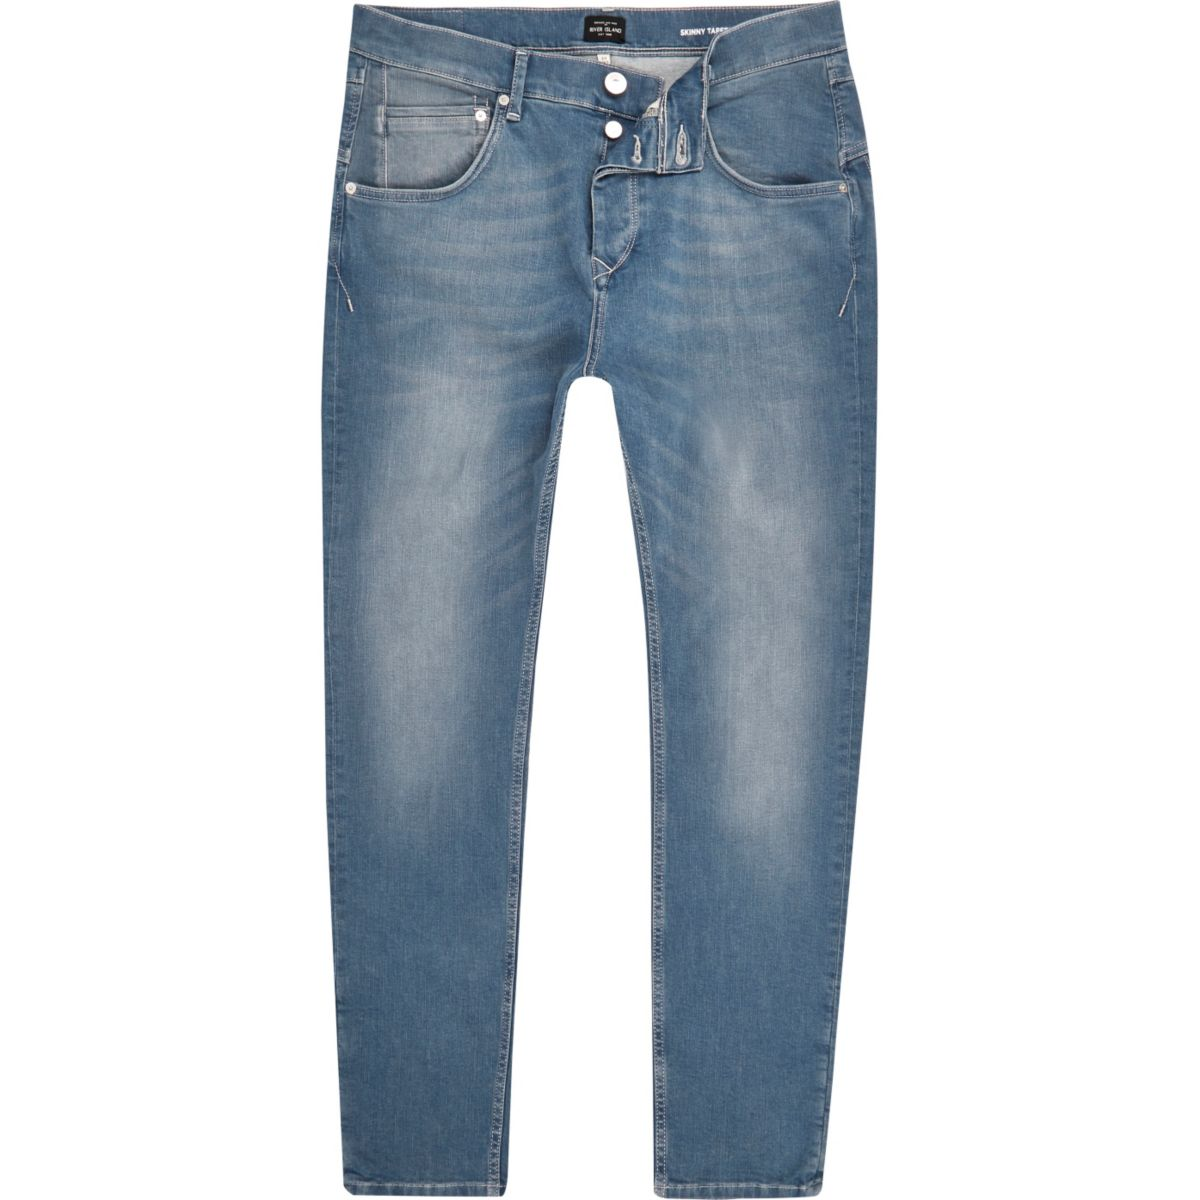 Mid blue wash skinny tapered jeans